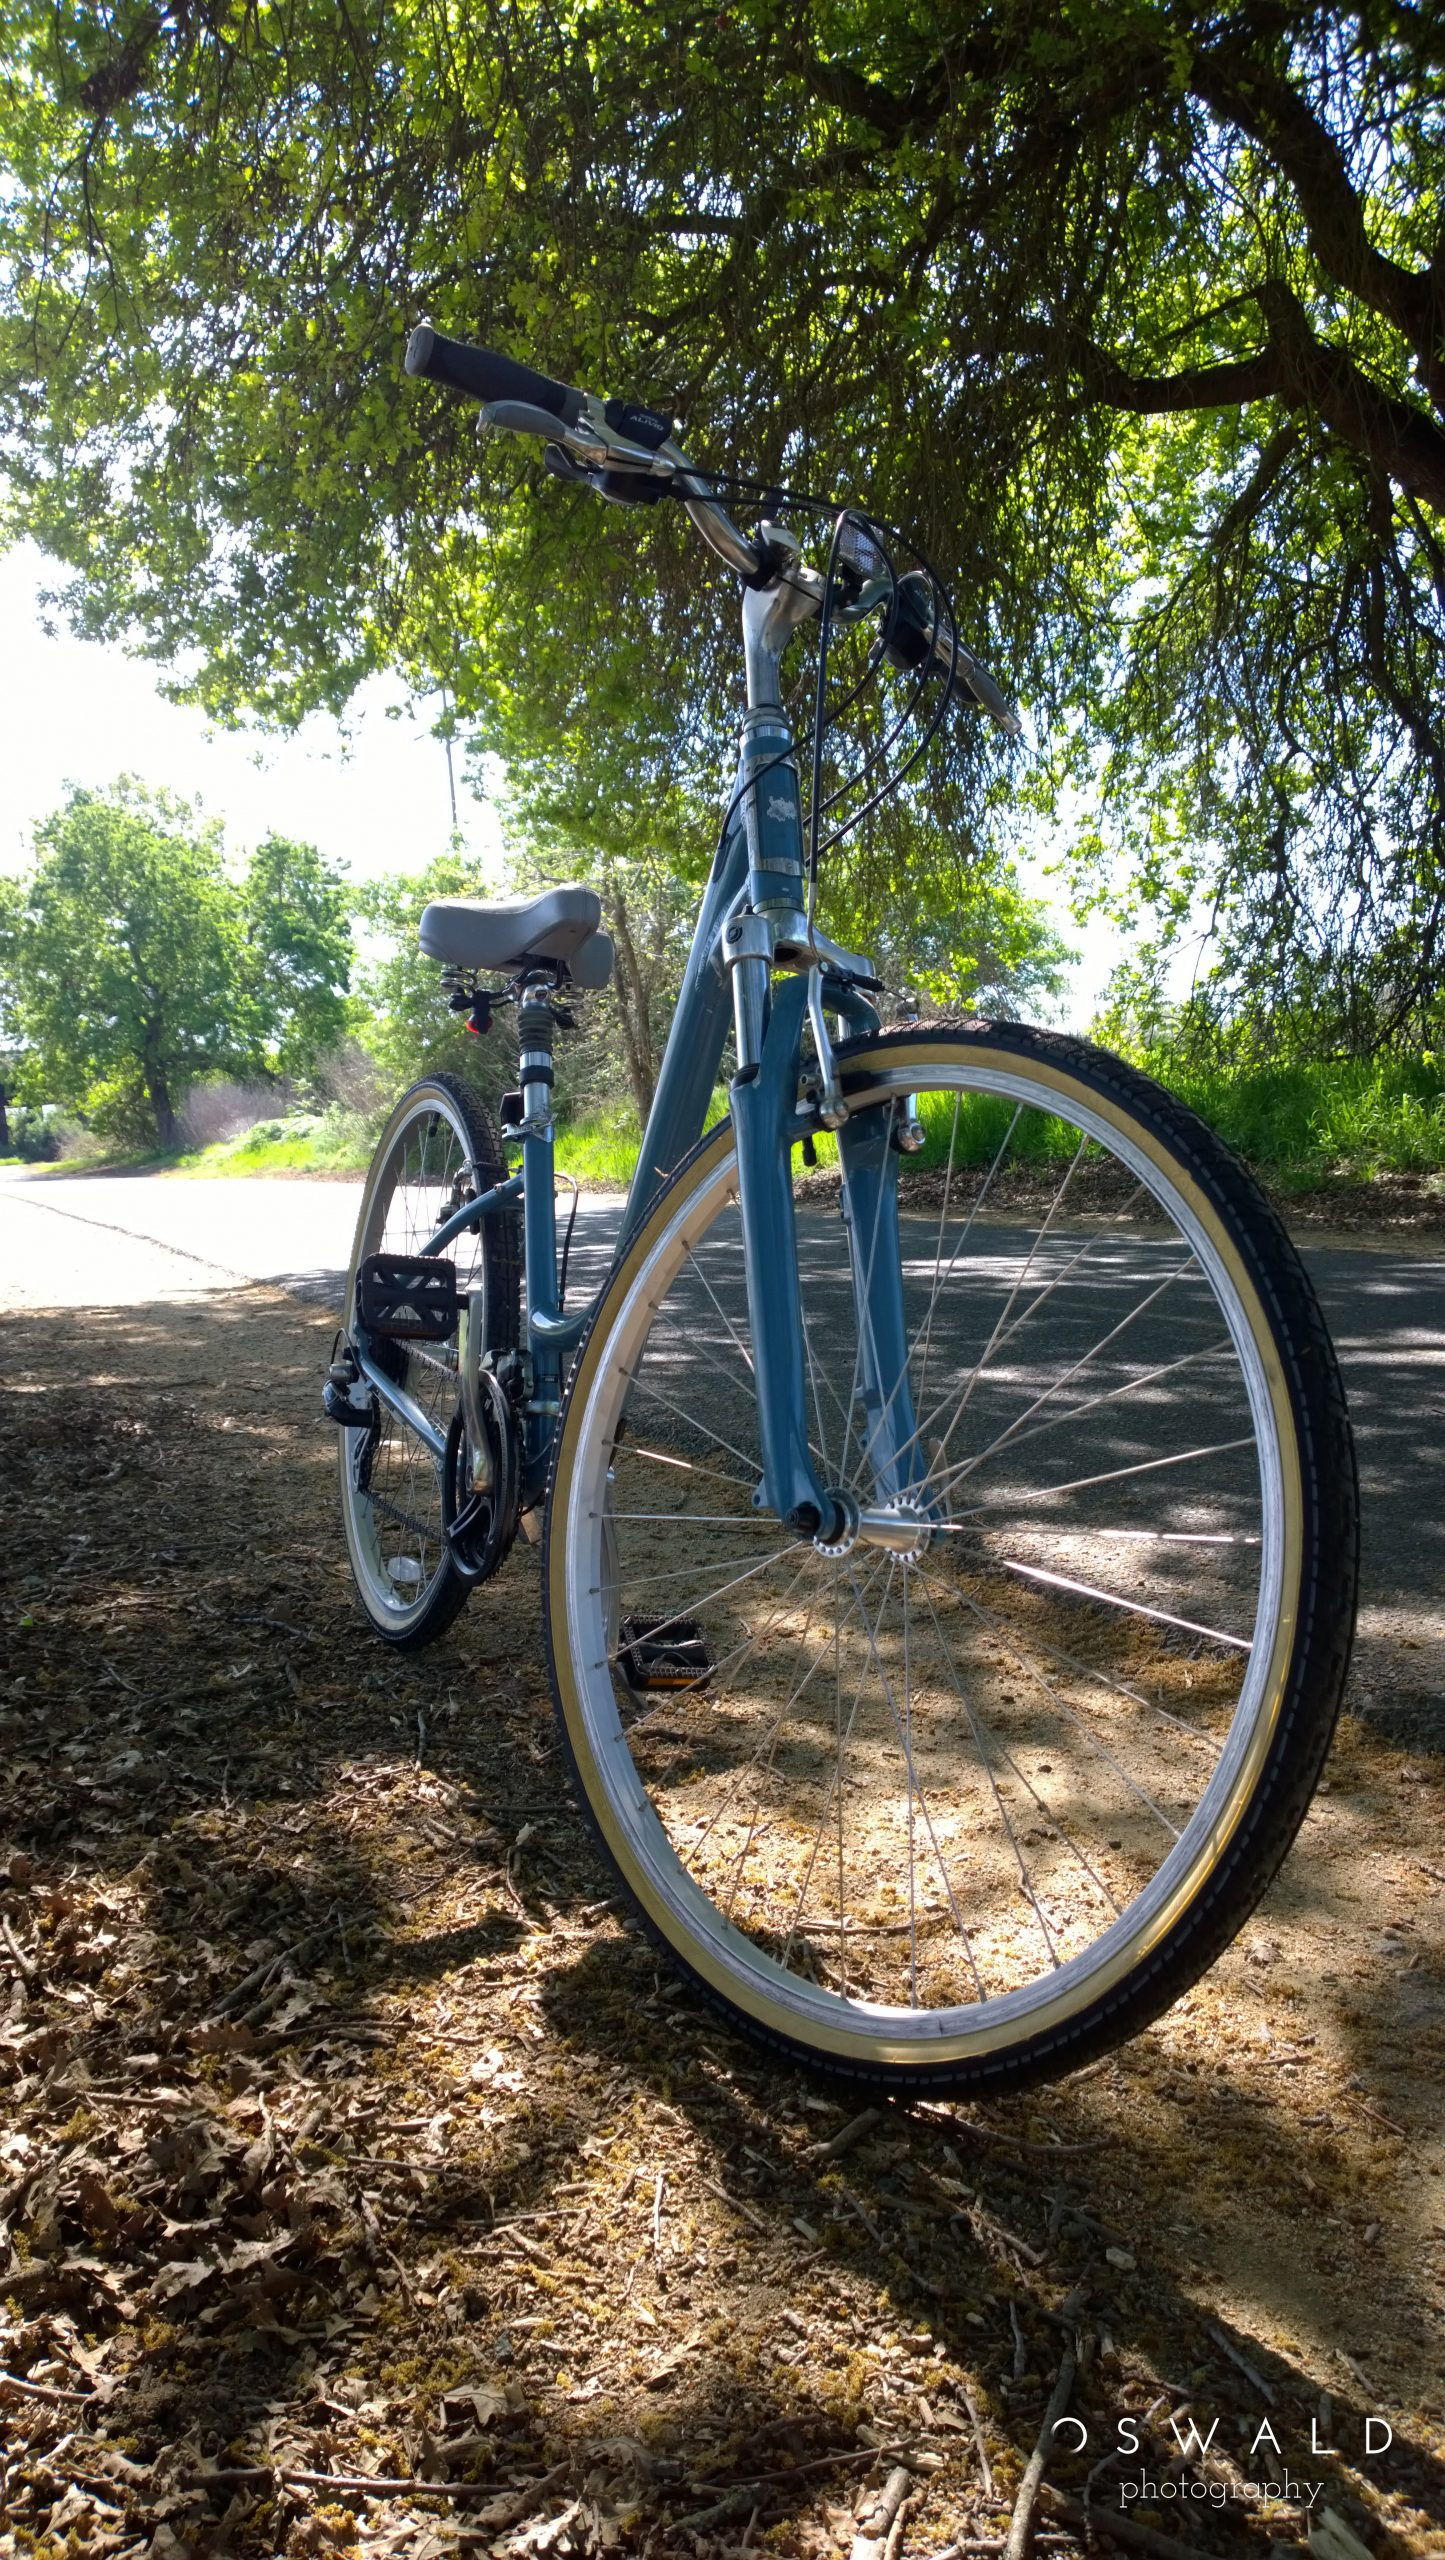 Close up, wide angle photography of a hybrid women's bicycle near a forrested bike trail.